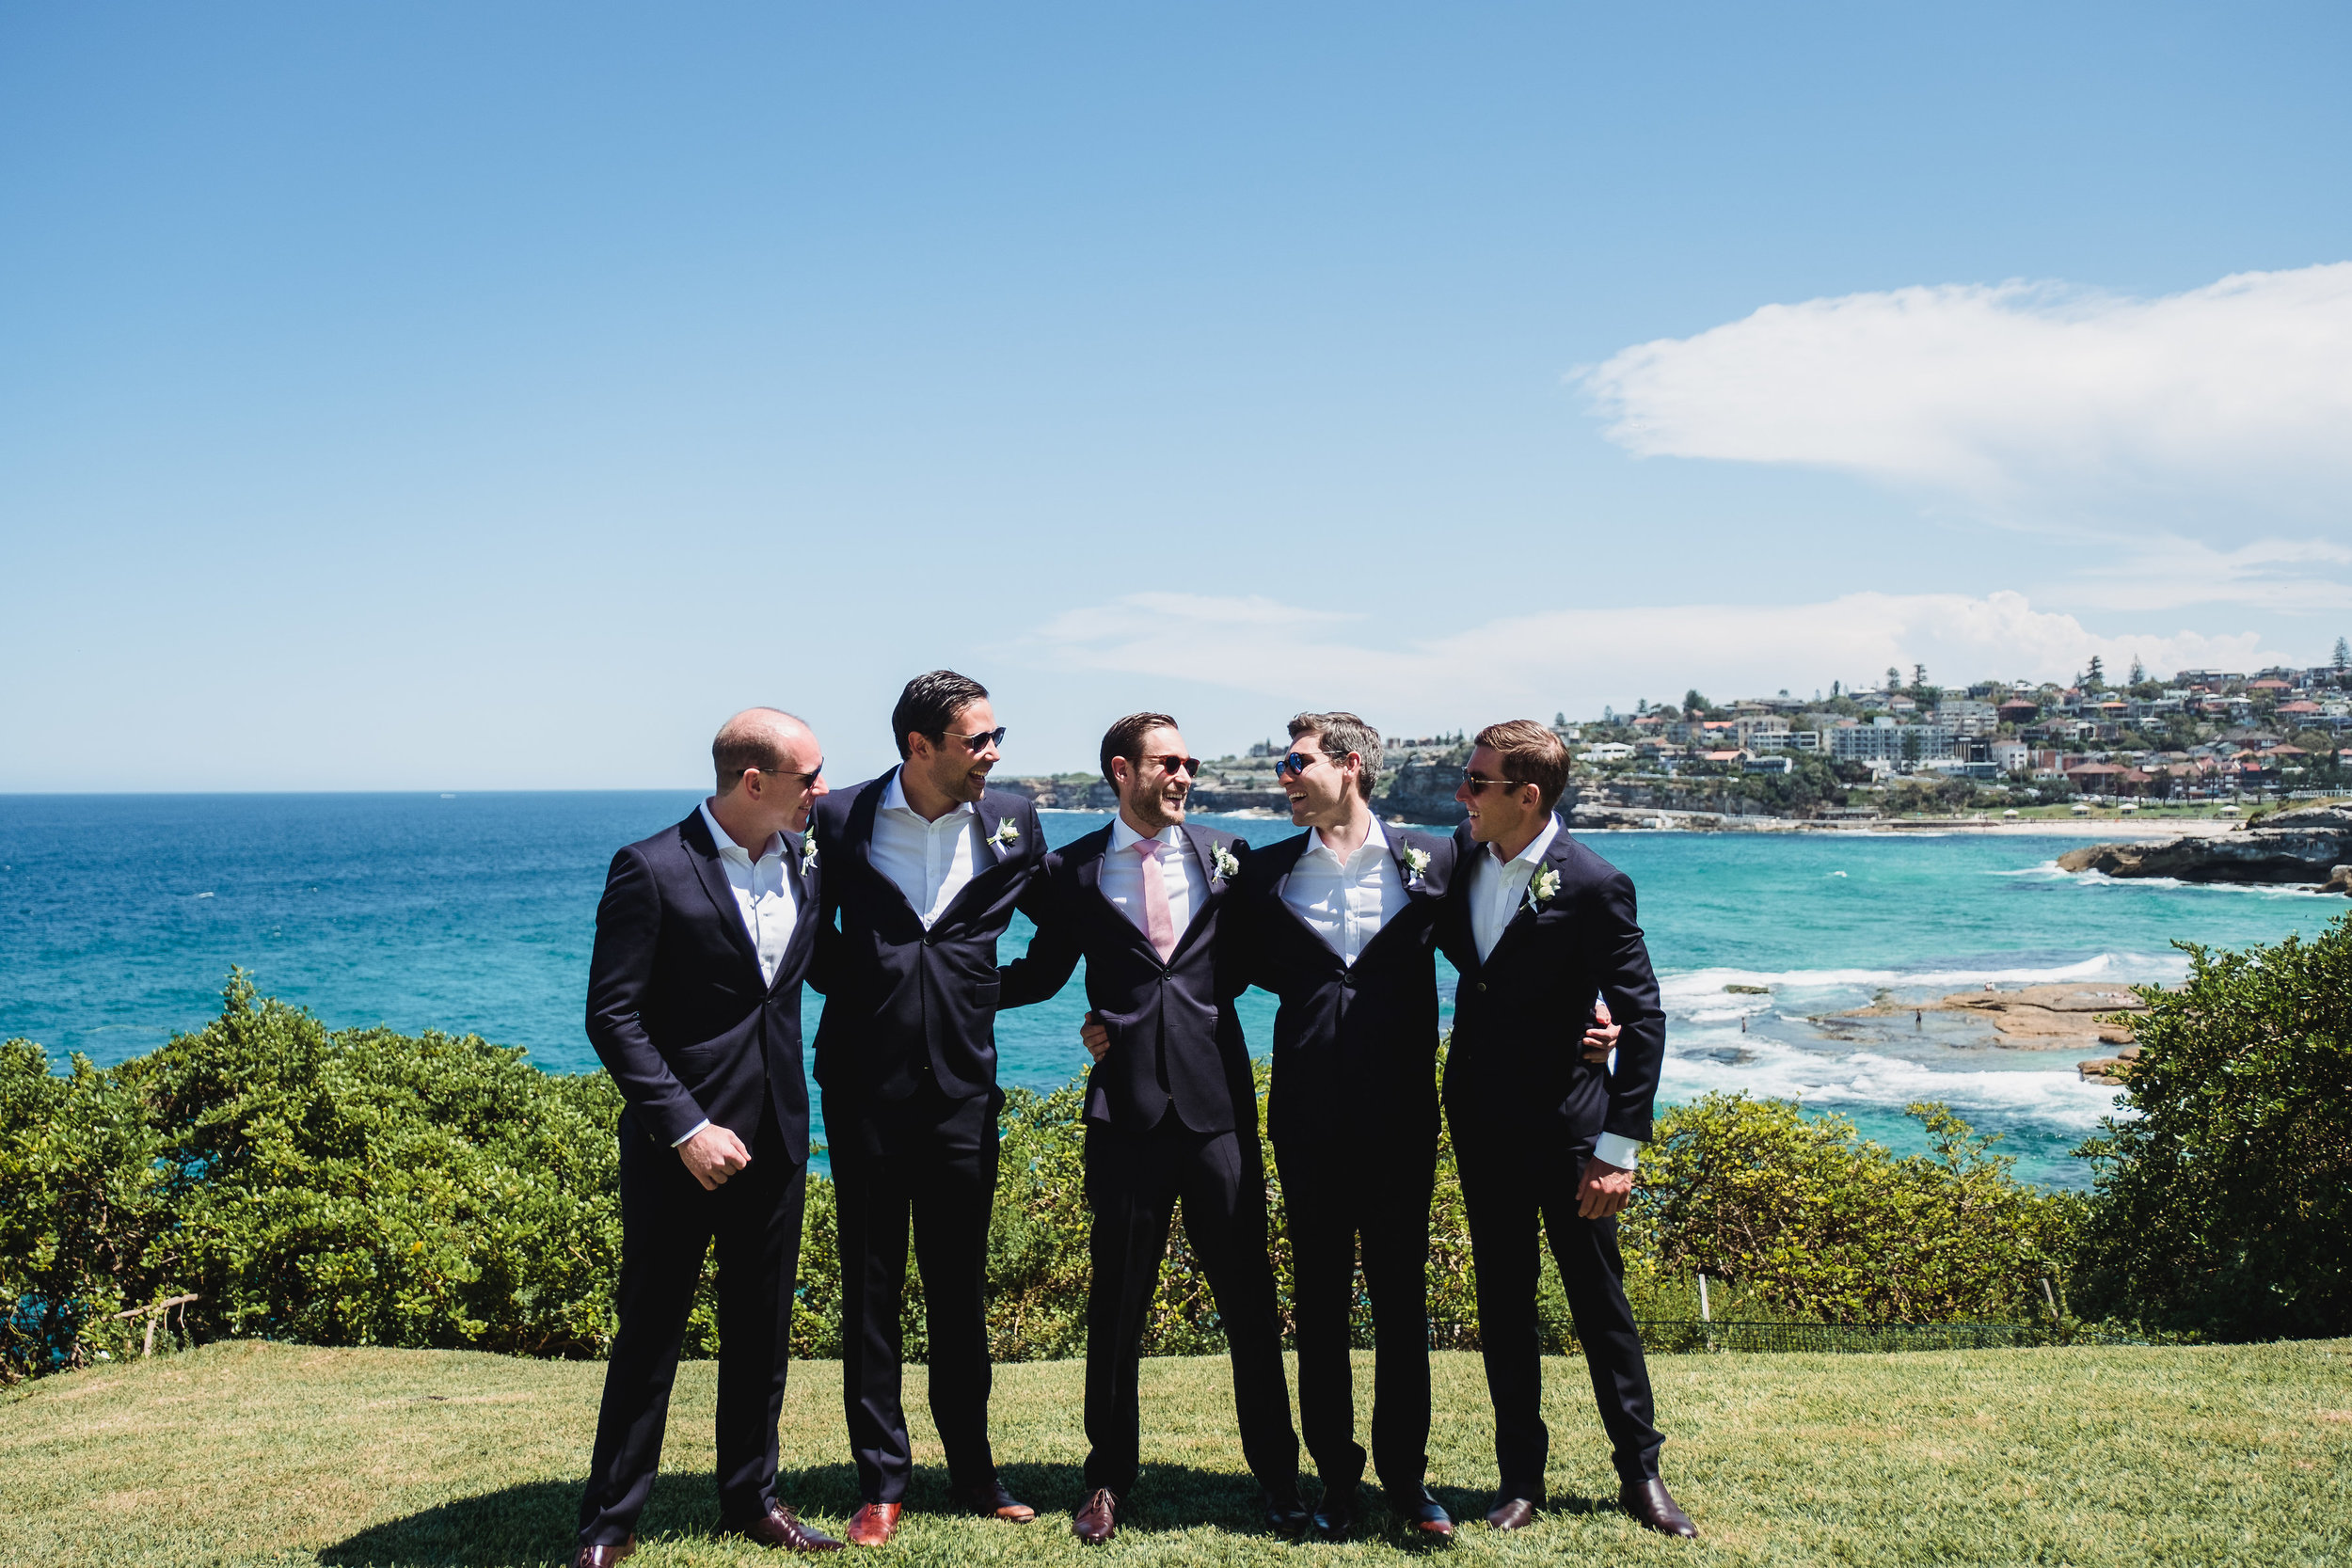 Grooms taking a group photo before the wedding in Bondi Beach